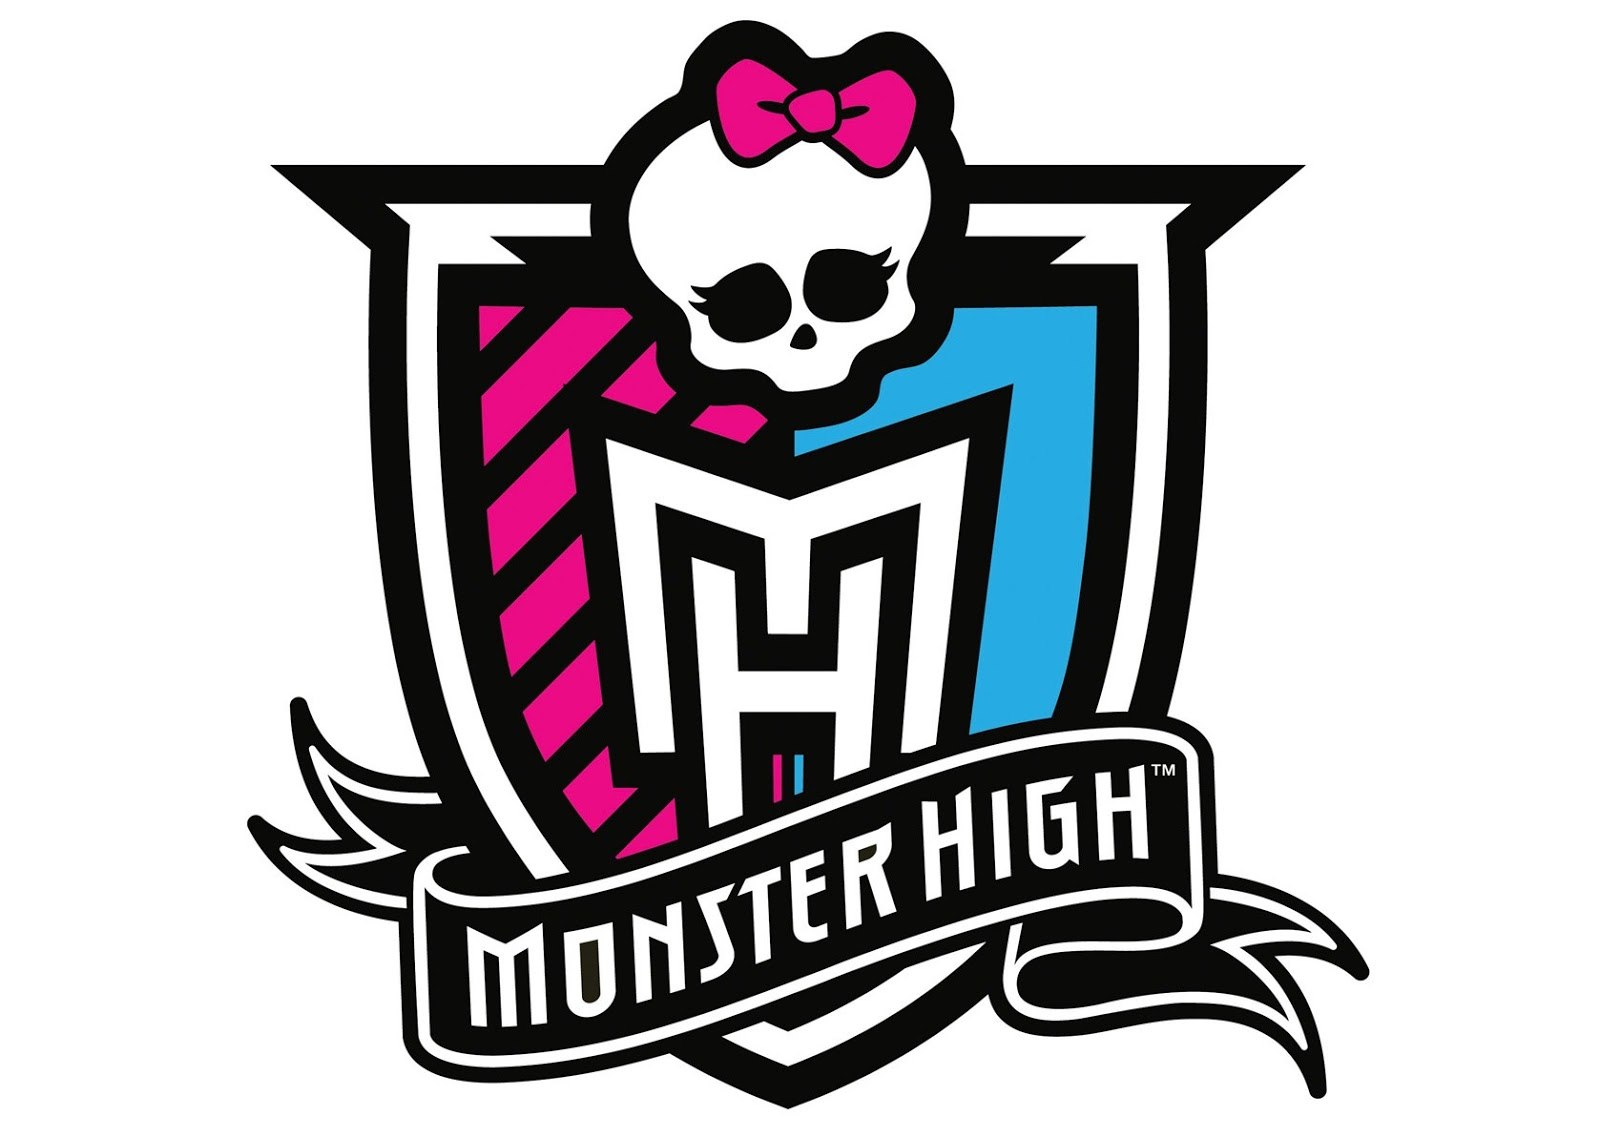 logo monster high